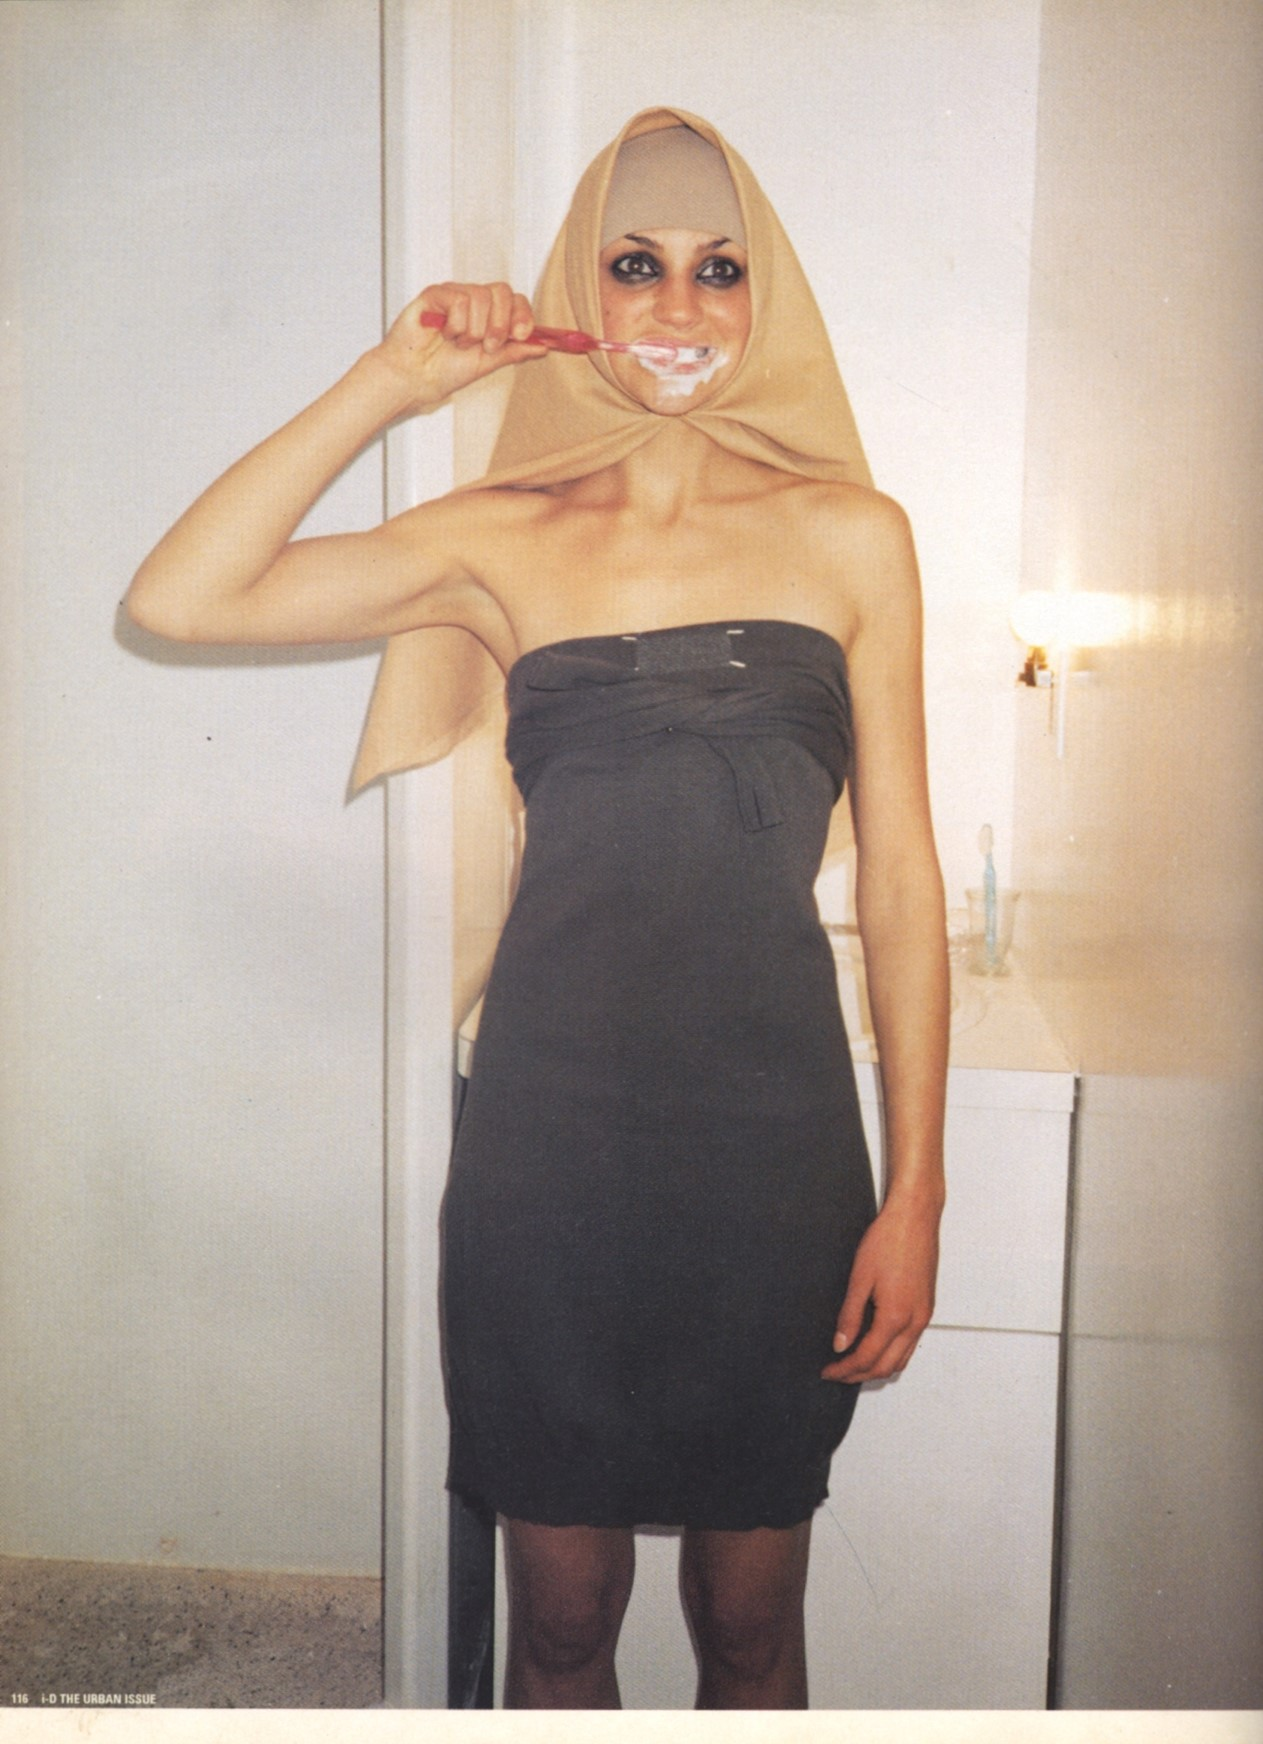 crystell photography terry richardson i d magazine no176 the urban issue june 1998